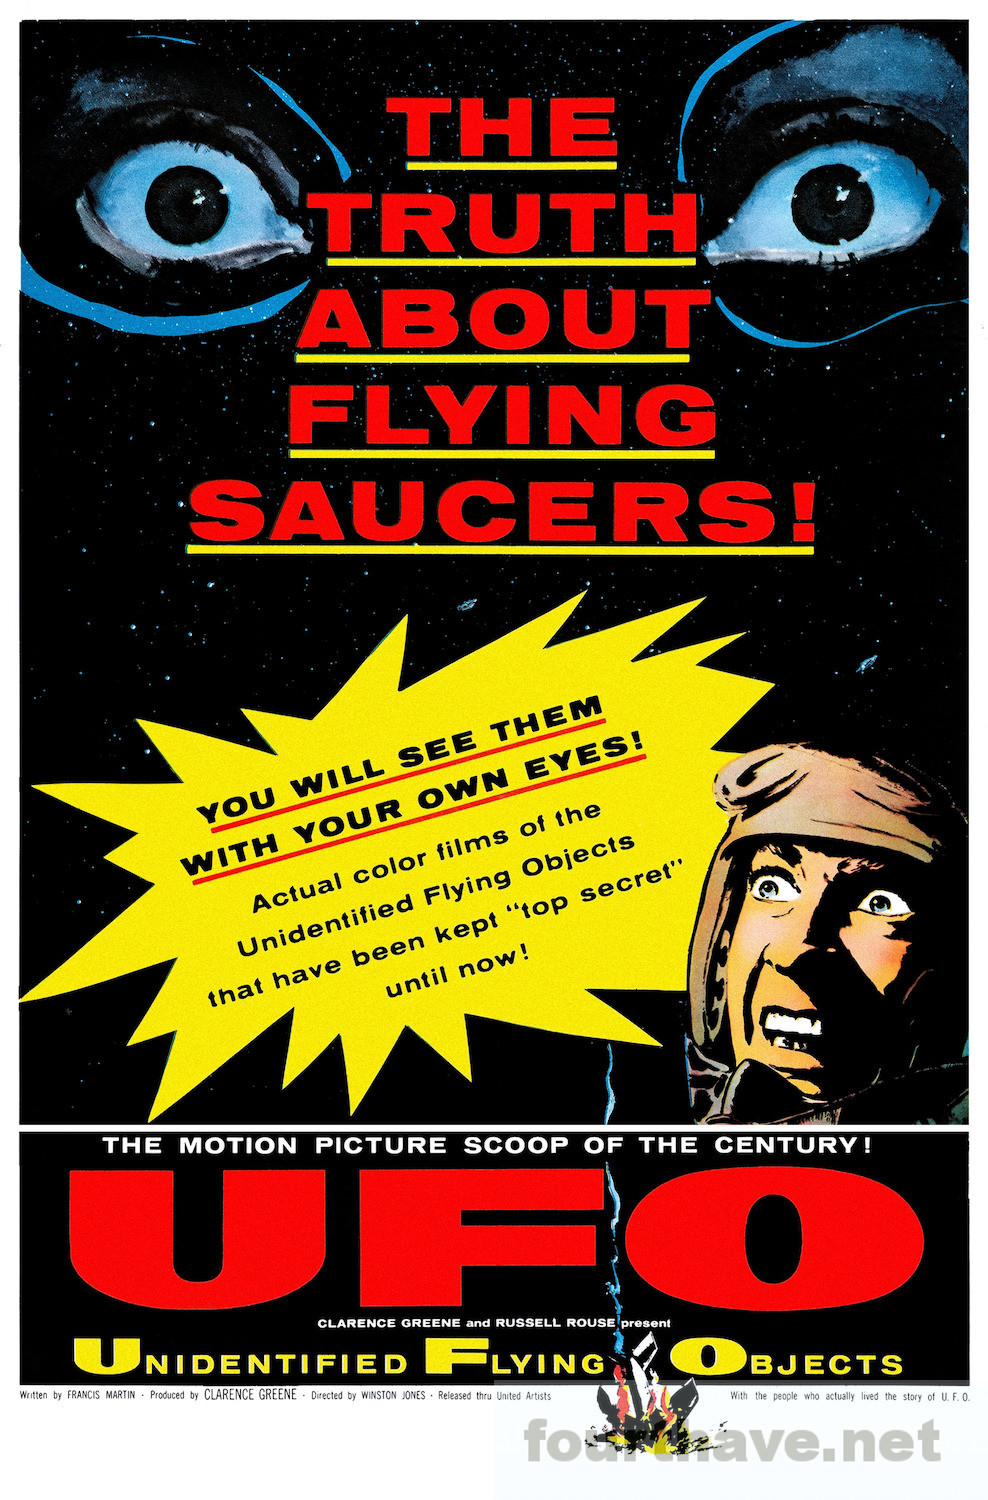 UFO (1956) #movie#poster#movie poster#UFO#unidentified flying object#motion picture scoop#actual color films#top secret#truth#flying saucers#semi-documentary